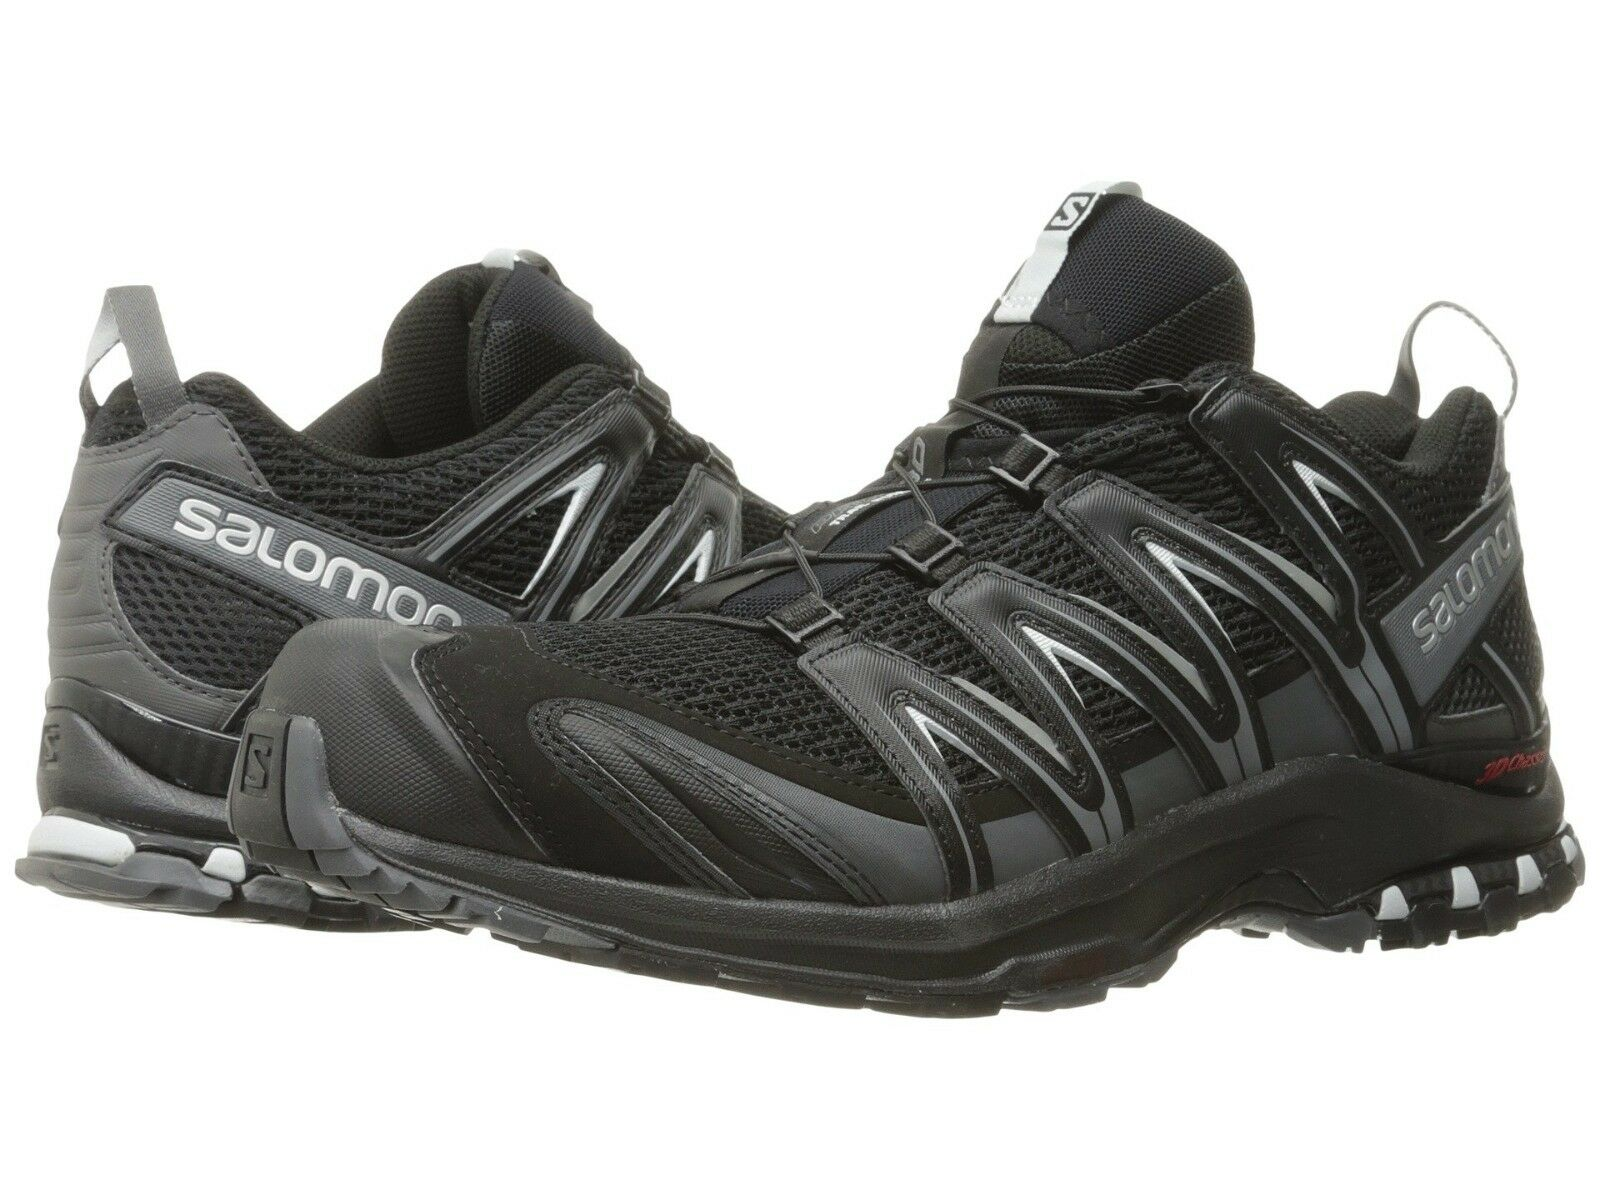 Salomon Men's XA Pro 3D Stability Running Shoes - Black/Magn